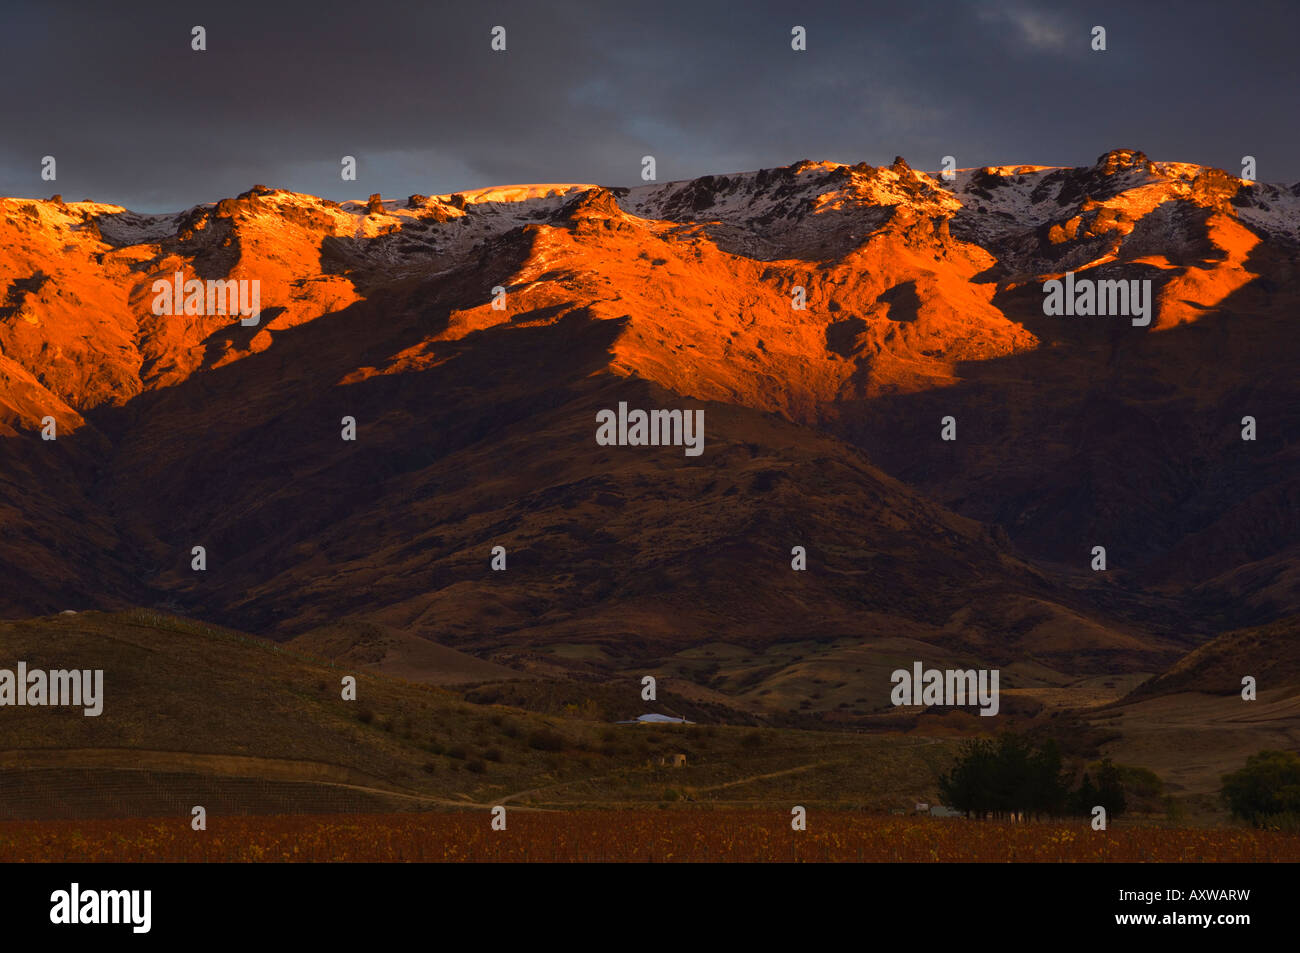 Pisa Range, Mount Pisa, Central Otago, South Island, New Zealand, Pacific - Stock Image